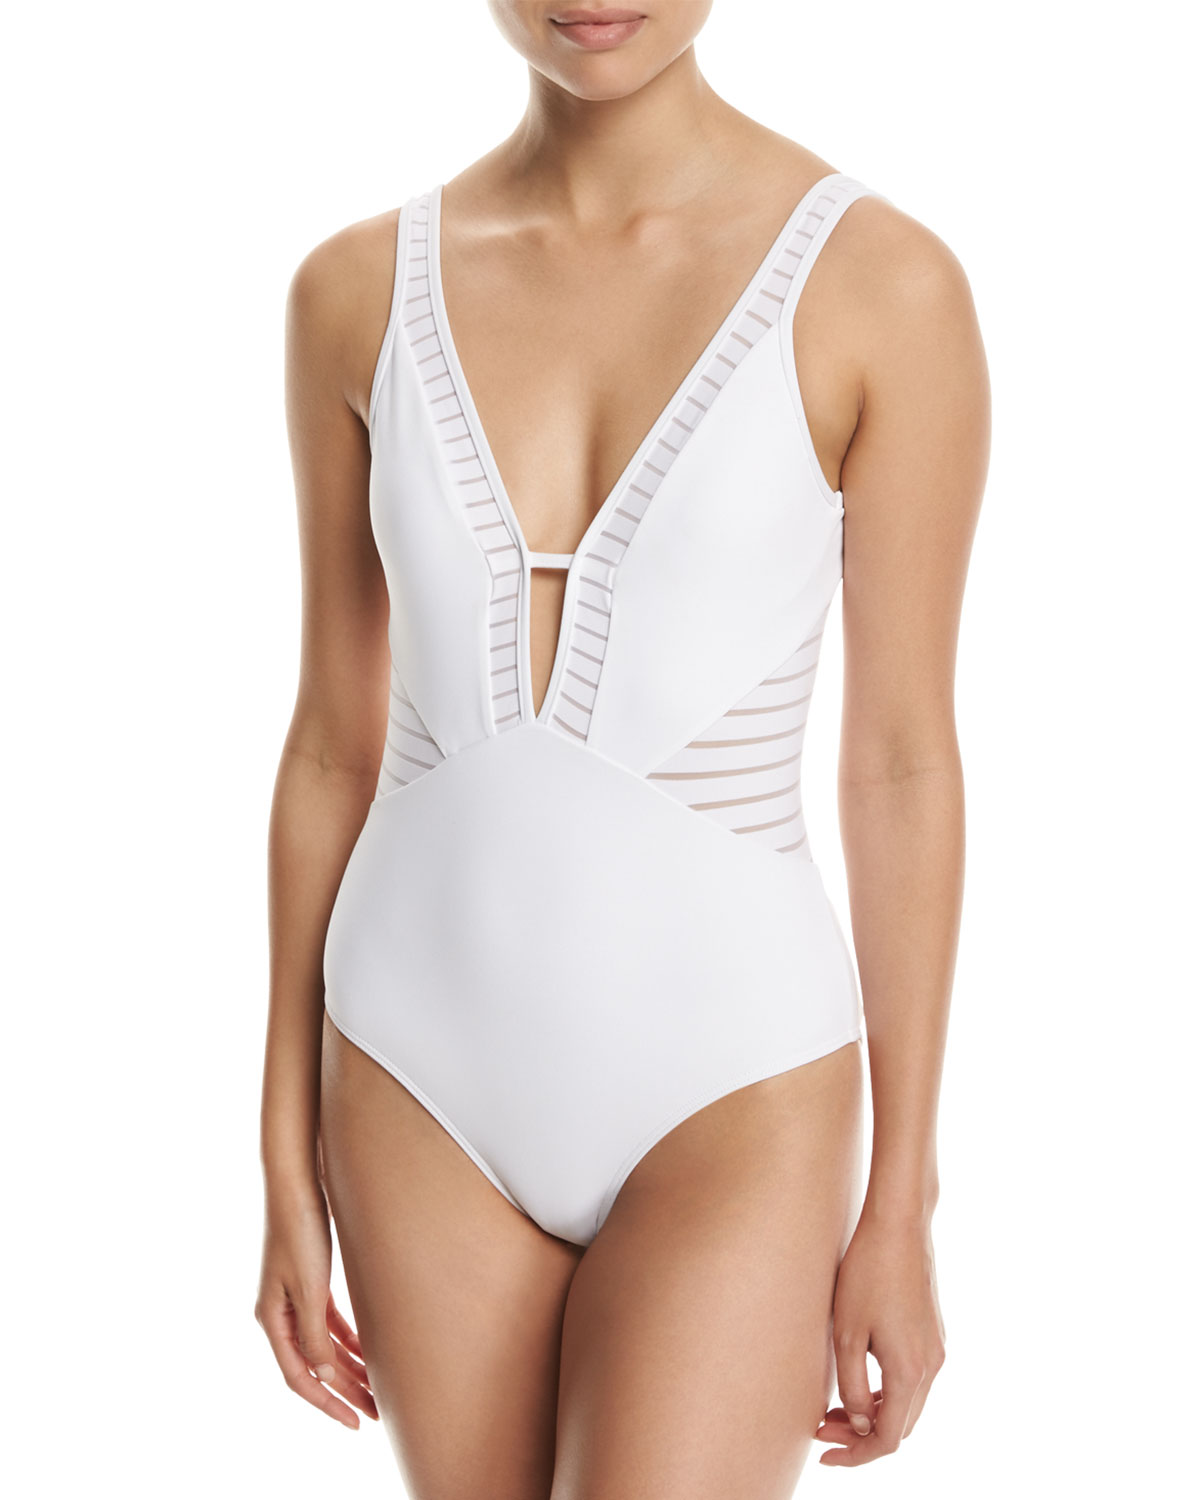 Parallels Plunge V-Neck One-Piece Swimsuit White